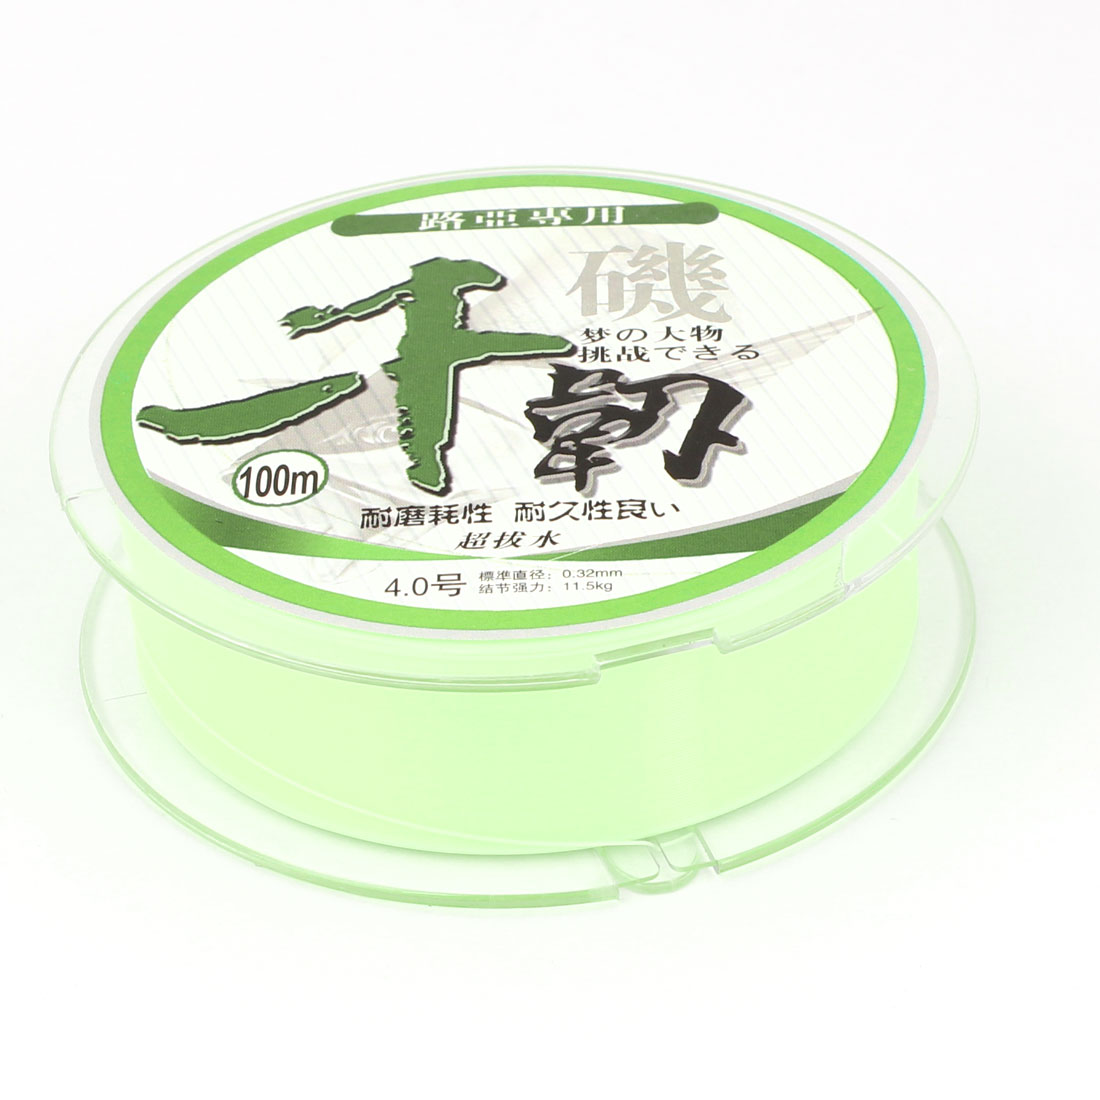 100M 0.32mm Dia Light Green Nylon Abrasion Resistance Fishing Spool Line String